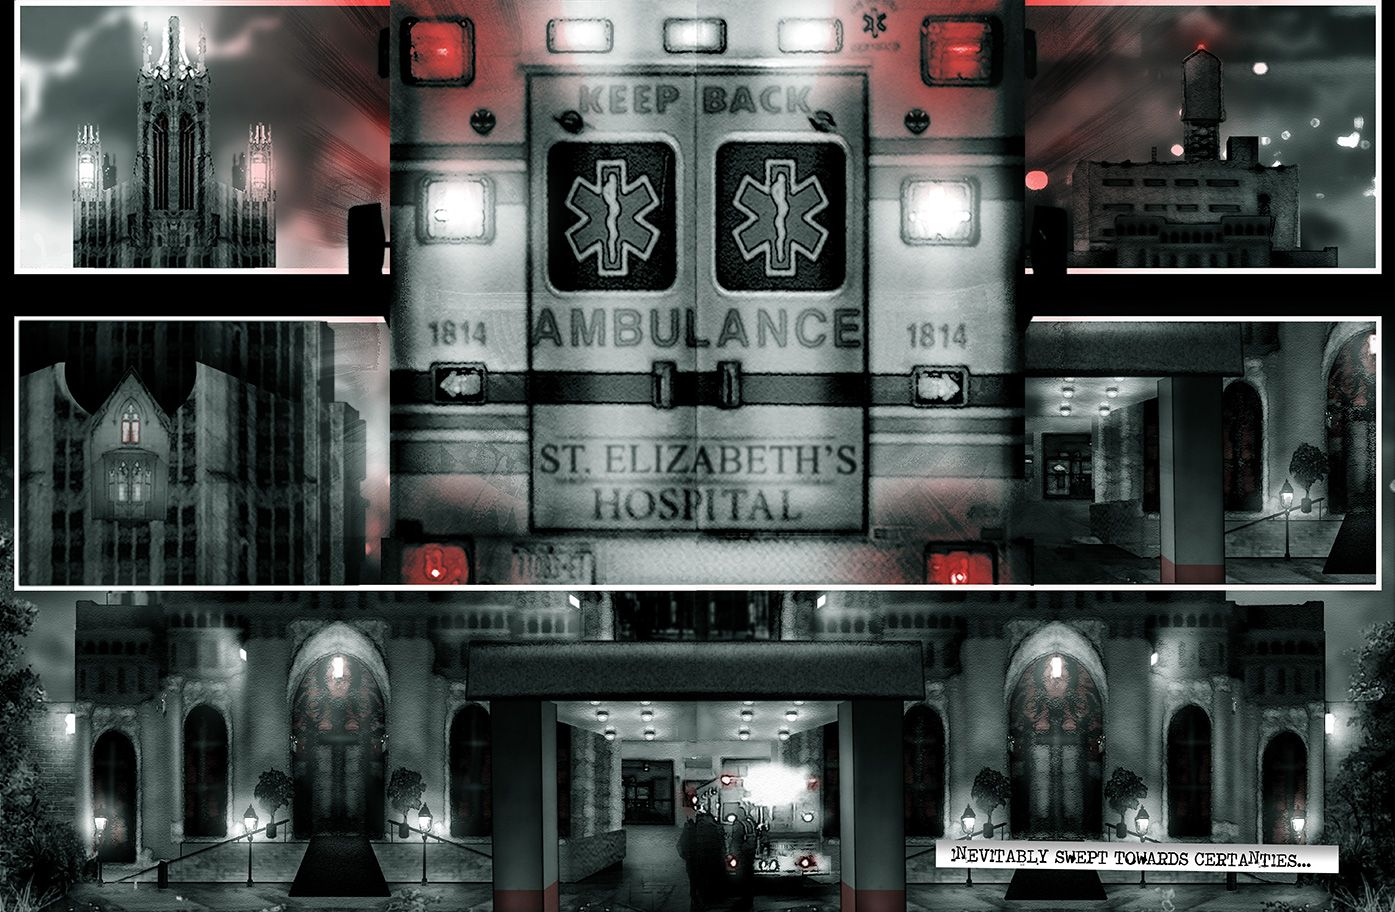 Ambulance arriving at hospital, from the comic book series: THE FLOOD ~ a salvation myth